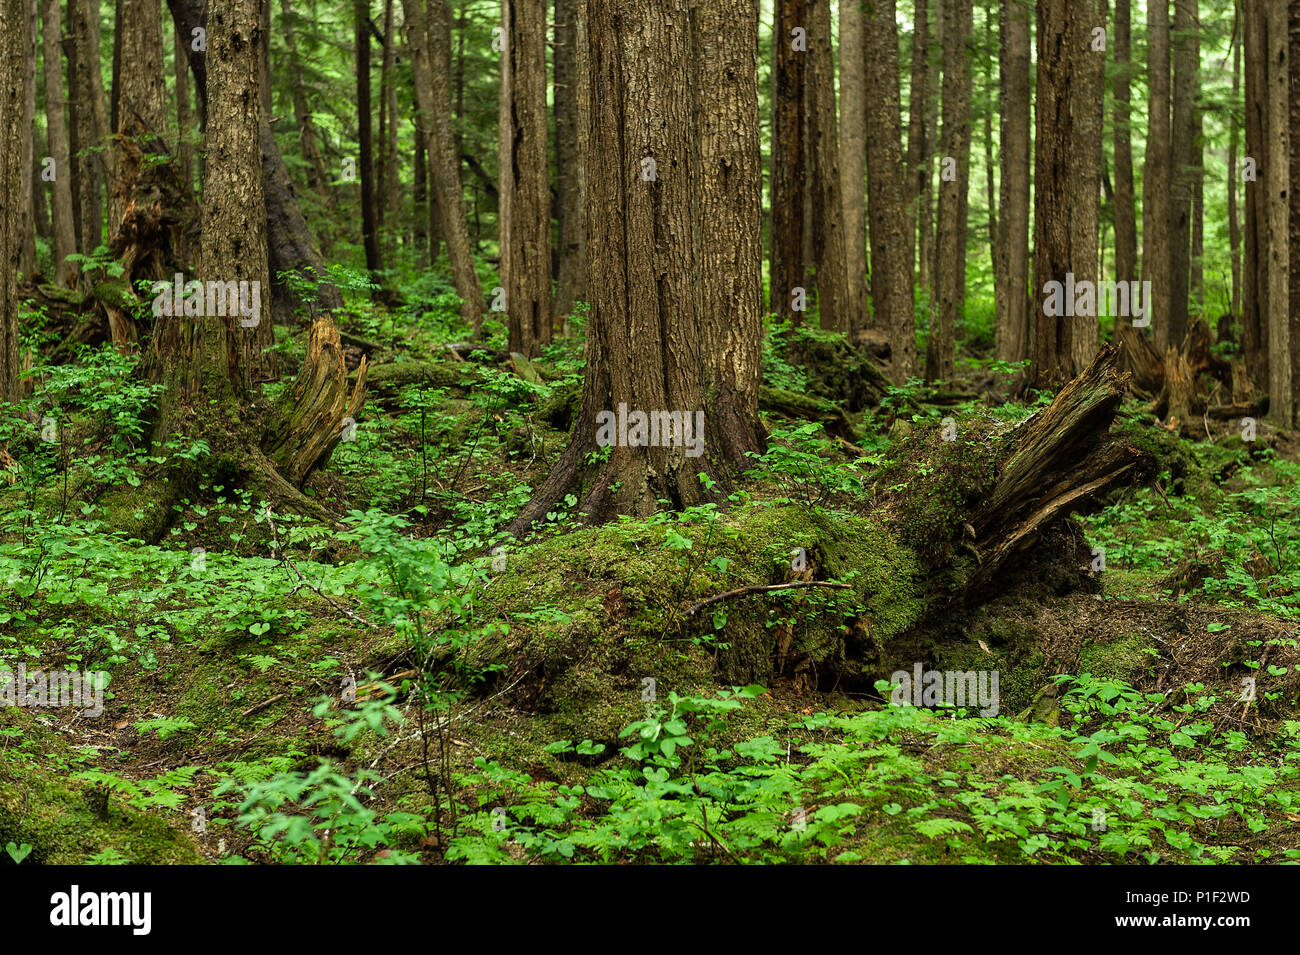 Verdant forest floor, Canary Point, Hoonah, Alaska, USA. - Stock Image